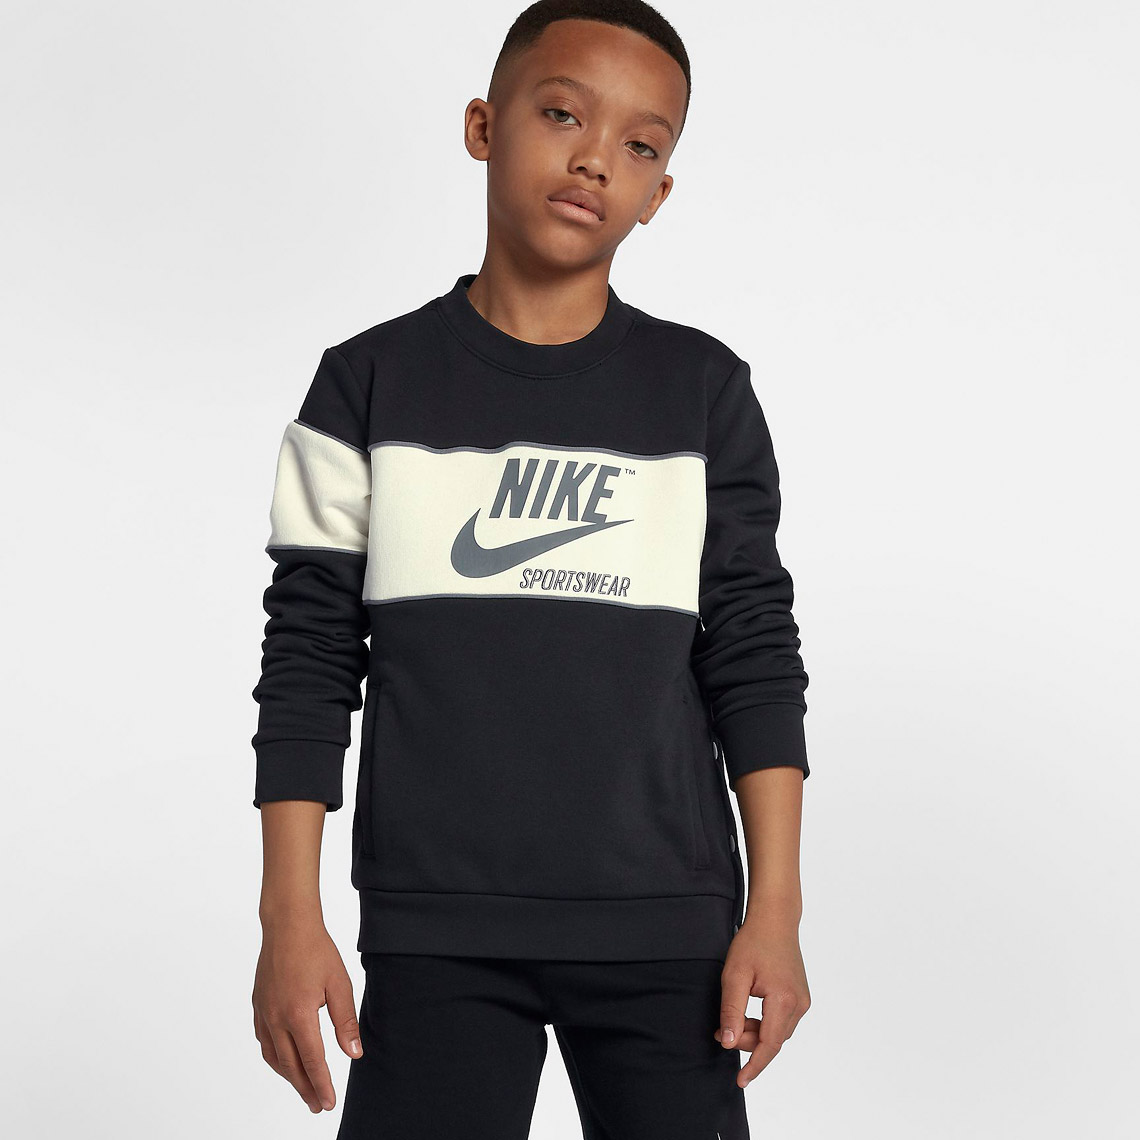 sportswear-big-kids-boys-long-sleeve-crew-top-nXAg4ob